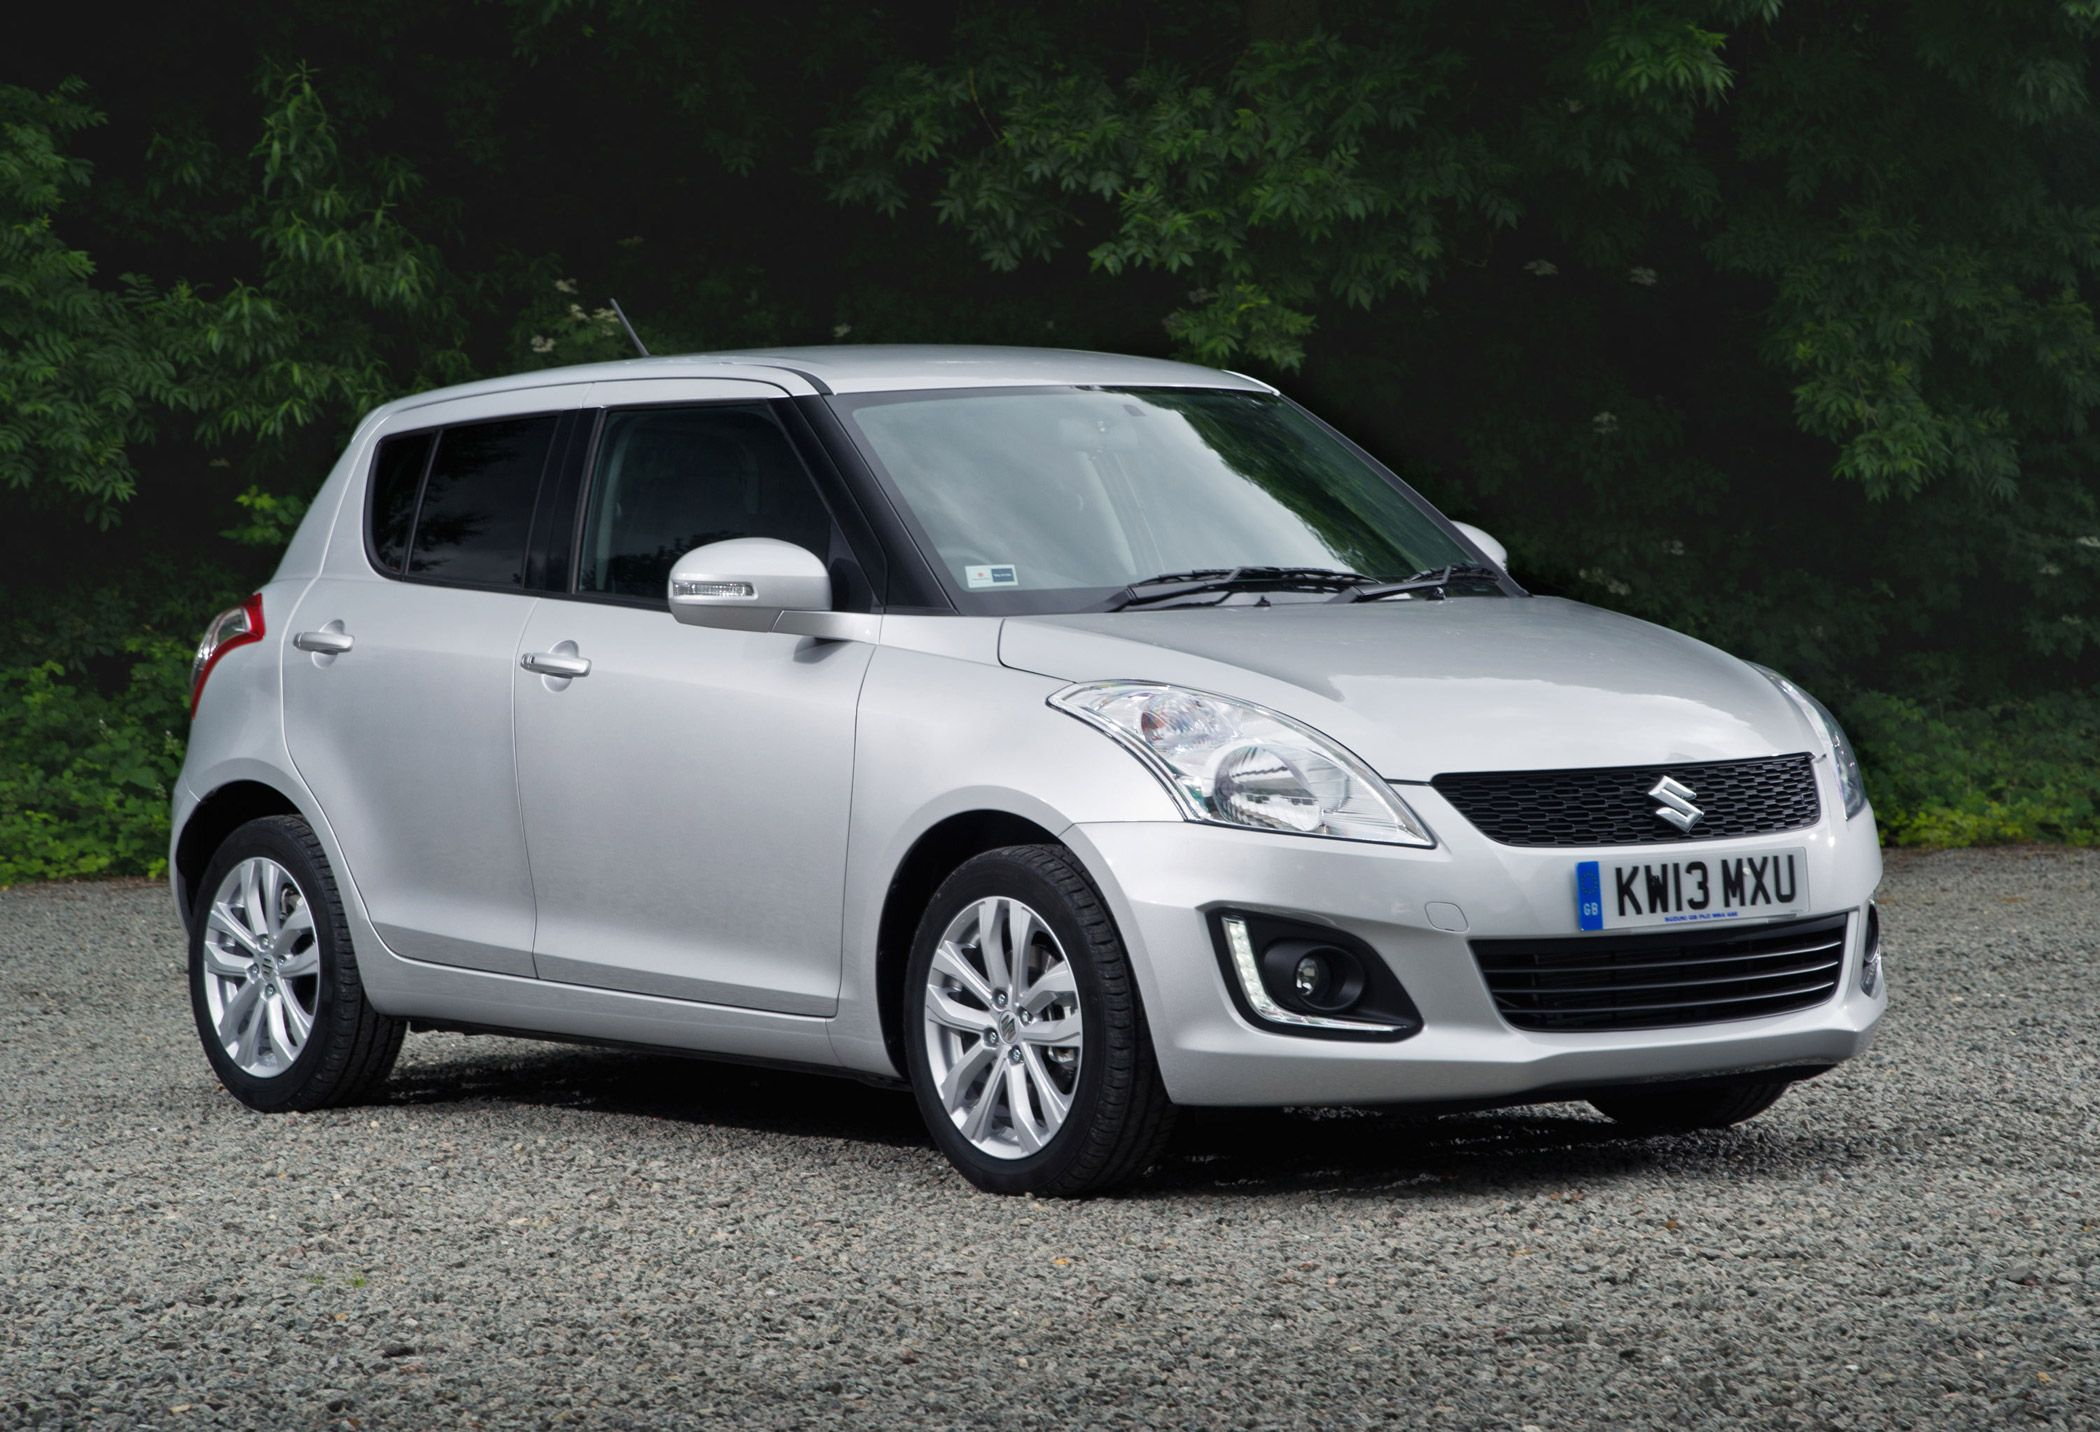 Suzuki have officially revealed the 2014 swift which gets a minor facelift the swift gets a new front bumper a revised front grille and an upper led